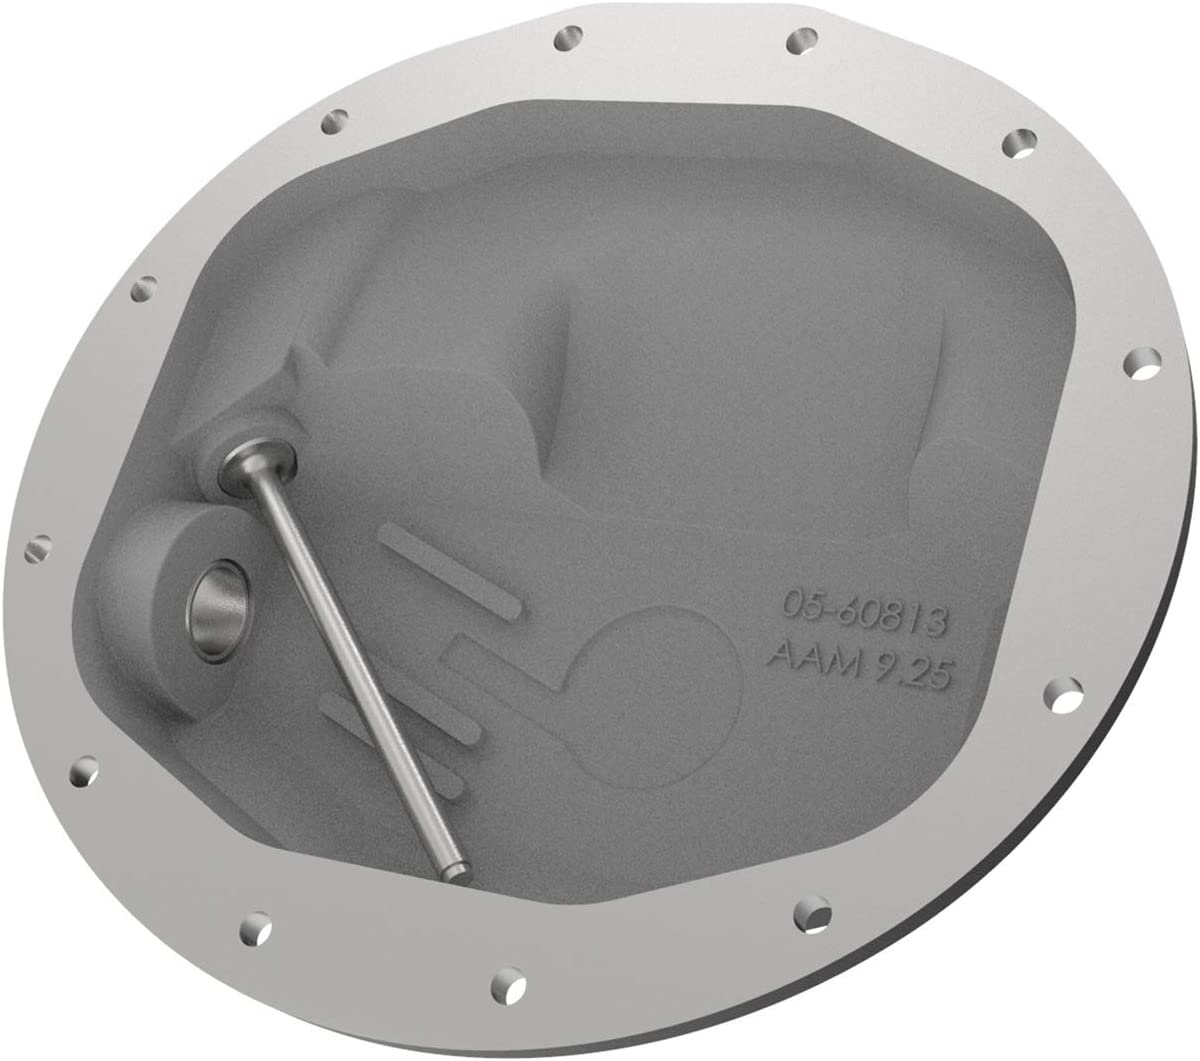 aFe Power 46-70402-WL Pro Series Front Differential Cover Black w//Machined Fins /& Gear Oil